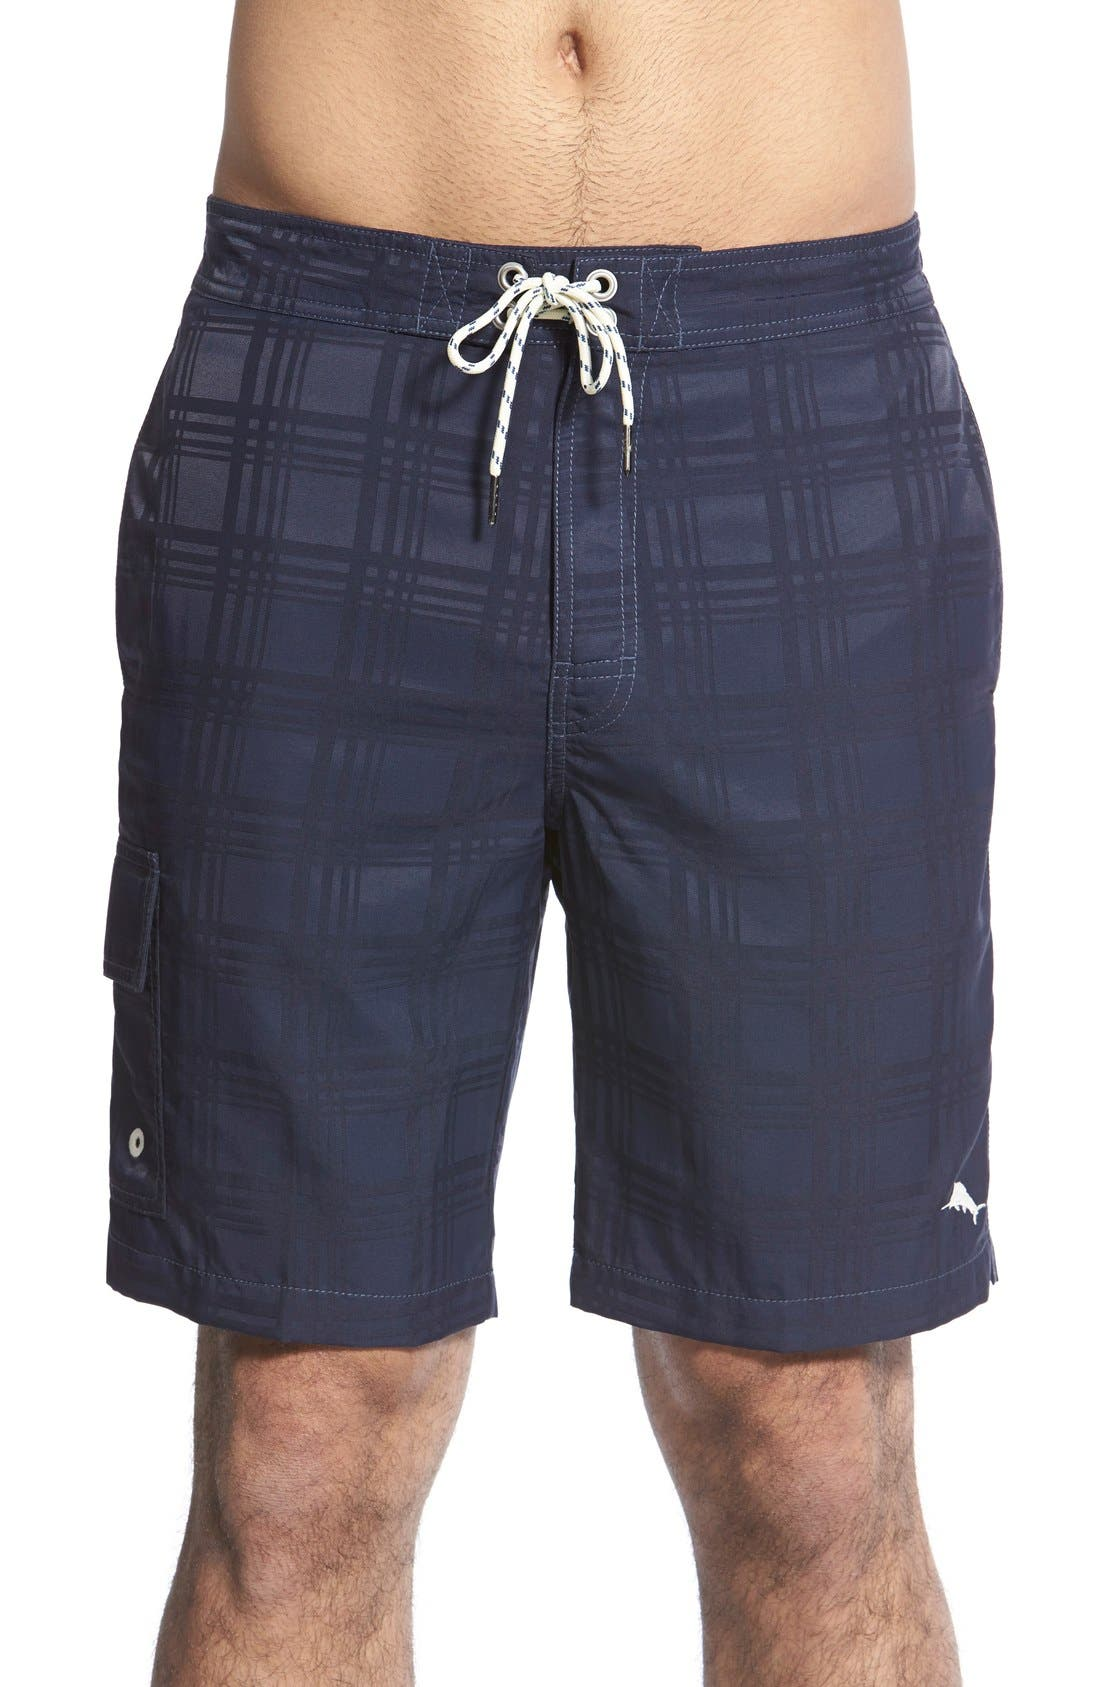 TOMMY BAHAMA 'Baja Plaid' Board Shorts